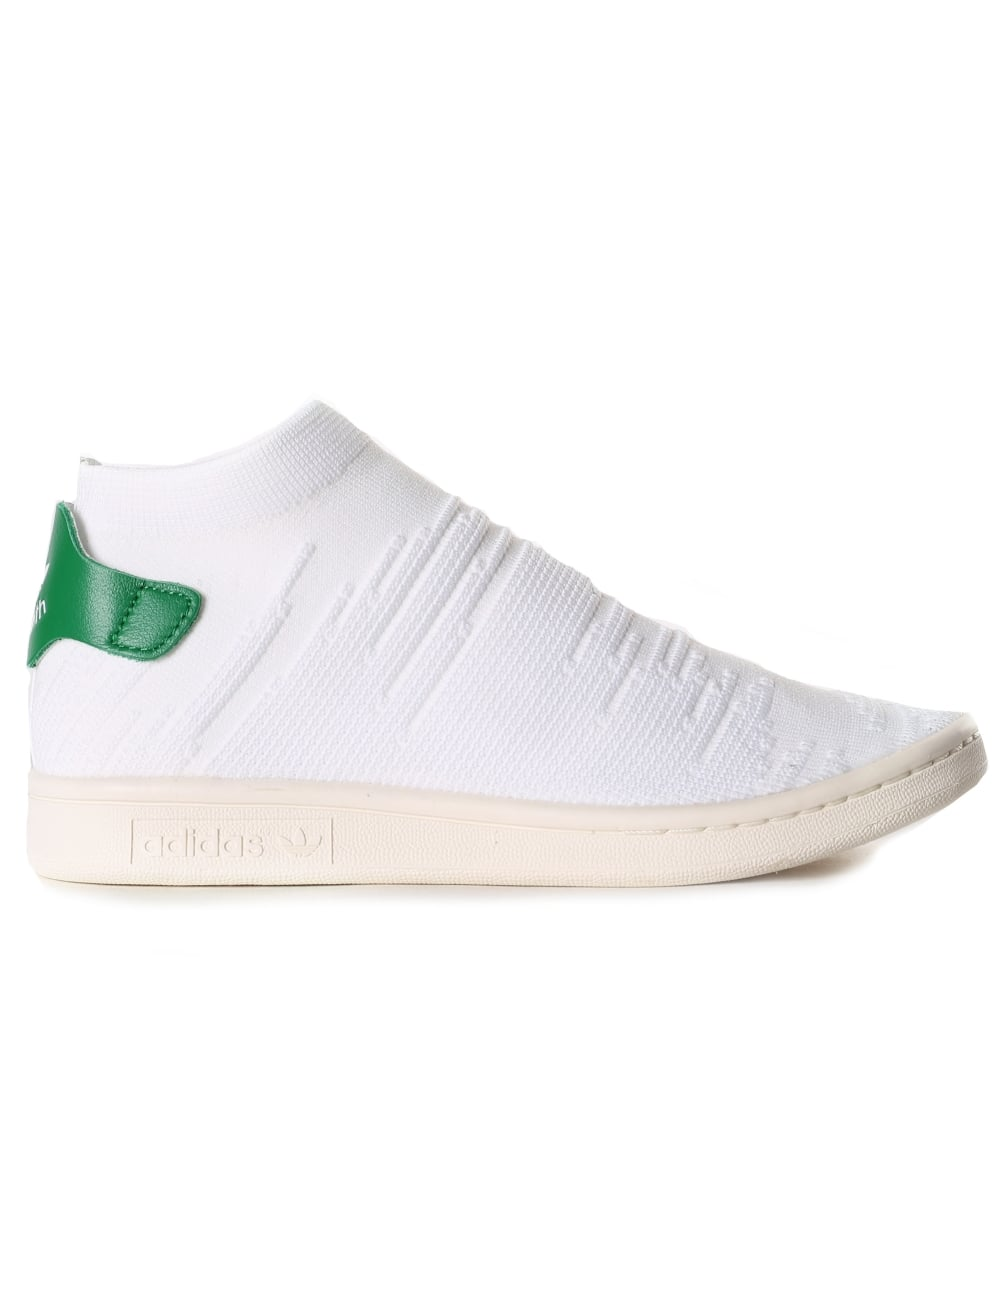 3c480a5c9ad Adidas Women s Stan Smith Sock Prime Knit Trainer White Green